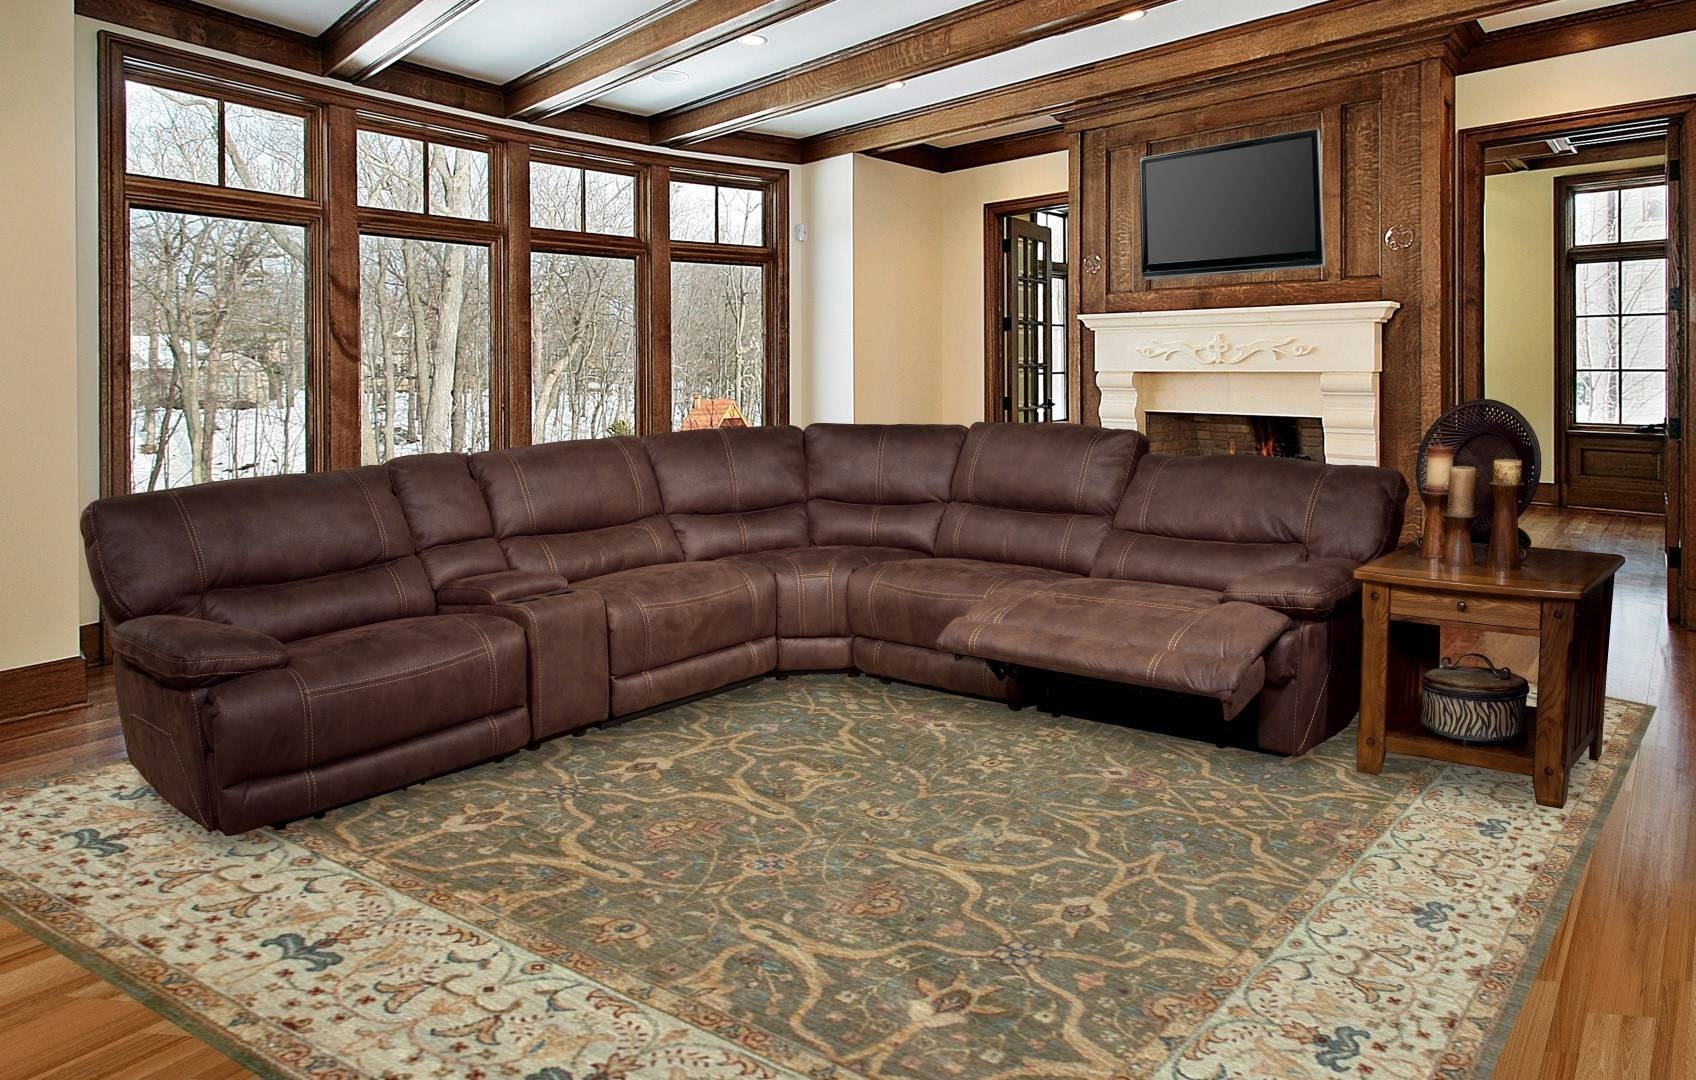 Furniture Warehouse Clearance And Closeouts! – Idaho Falls regarding Closeout Sofas (Image 8 of 30)